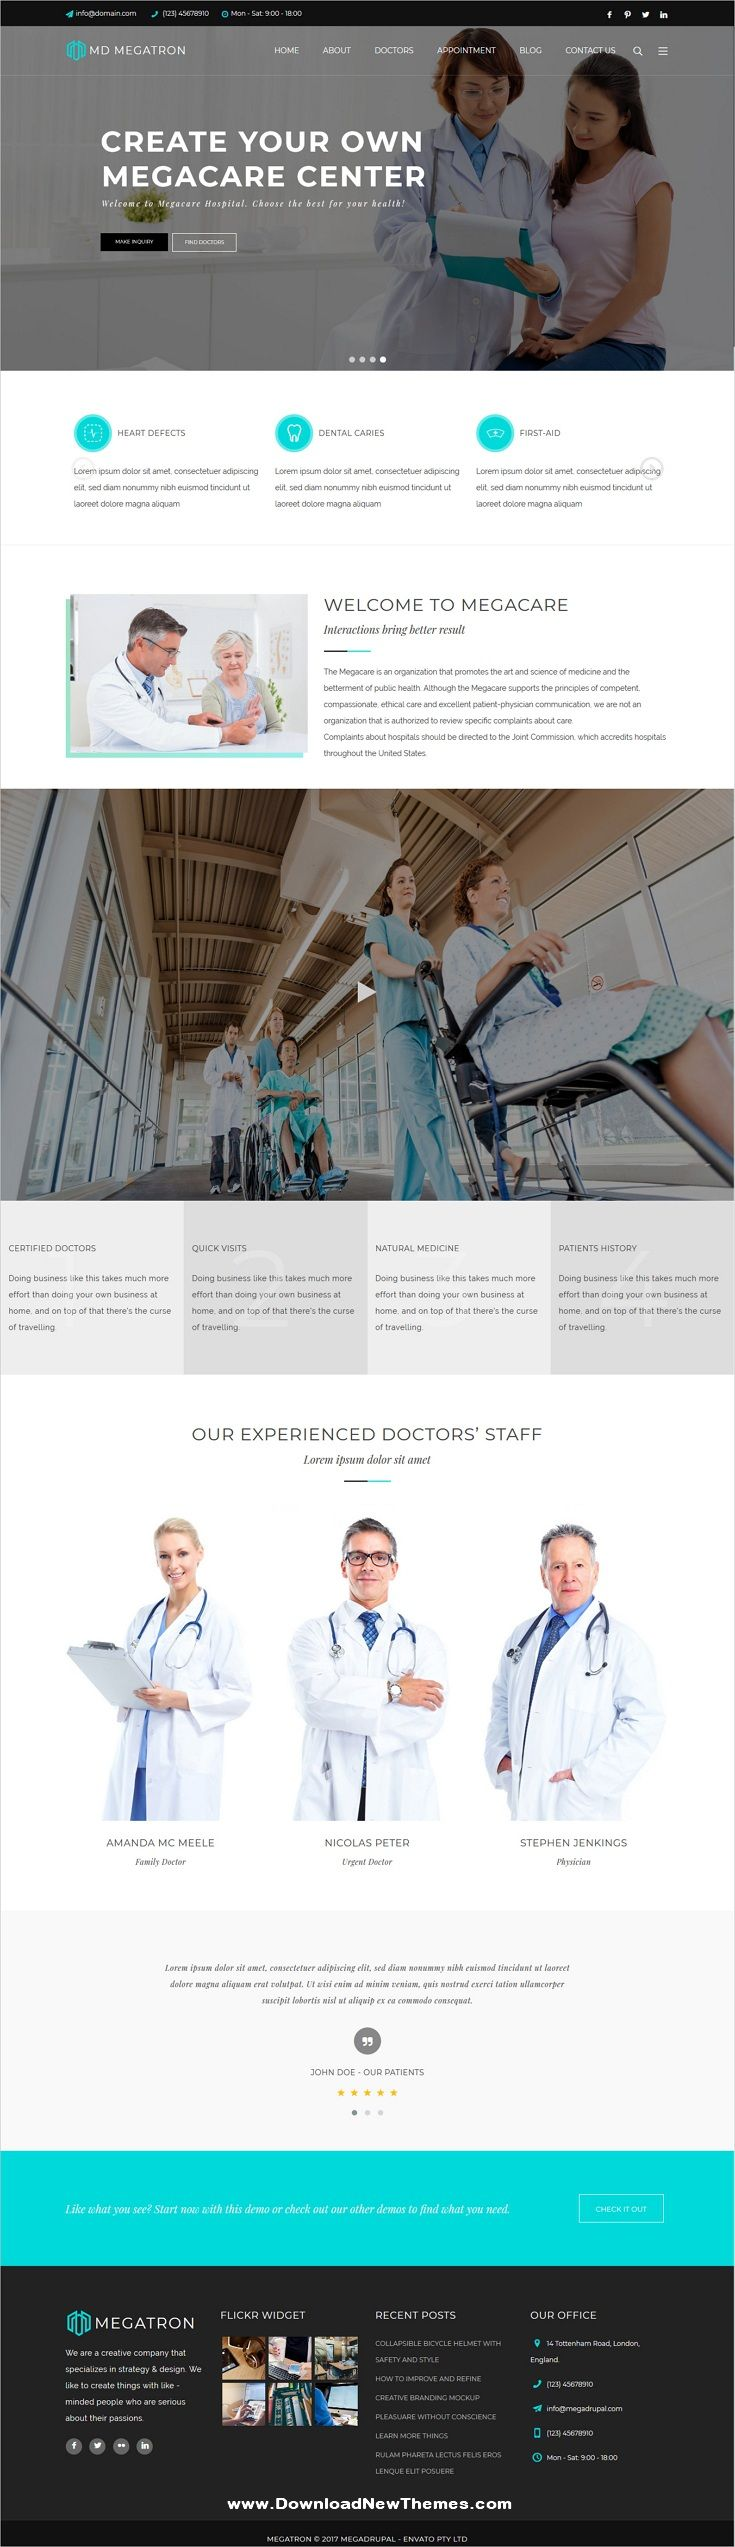 Megatron Is A Clean Minimal And Modern Design Responsive Multipurpose Drupal Templates For Corporate Fitness Drupal Web Design Inspiration Homepage Layout